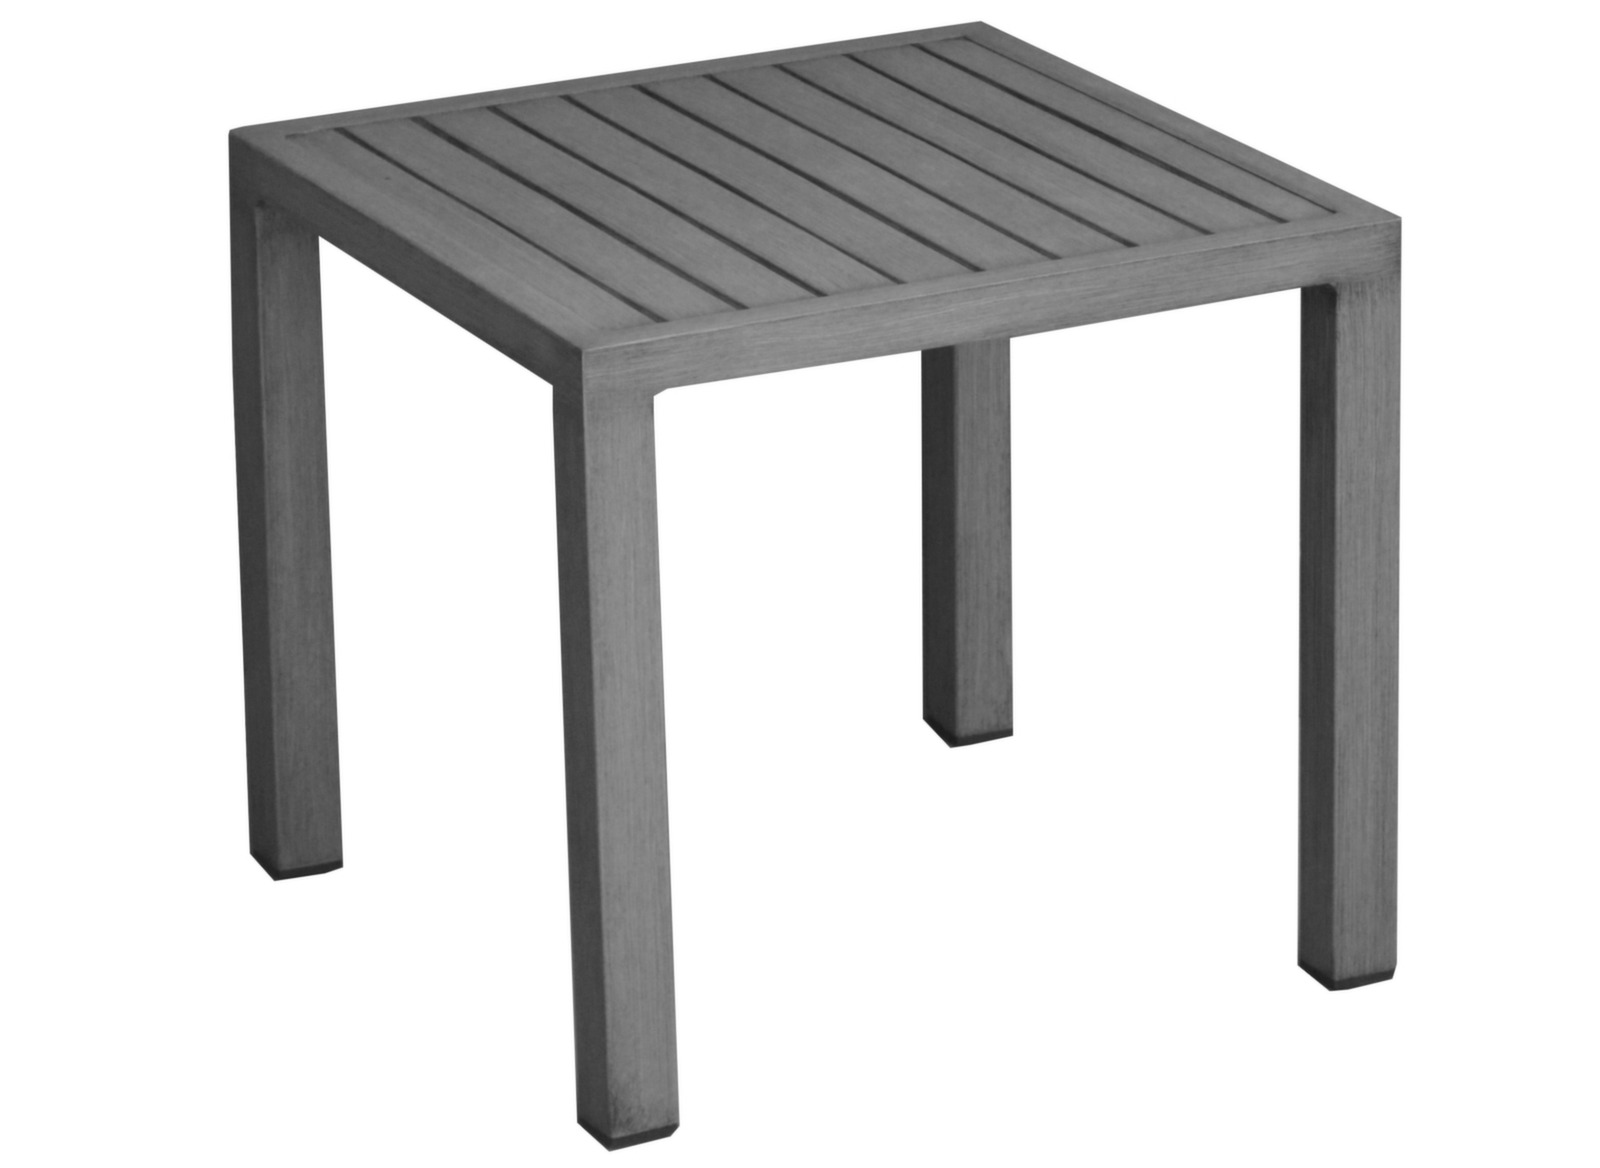 D co table jardin oceo 37 aulnay sous bois aulnay sous bois table de multiplication de 7 - Table jardin nantes ...